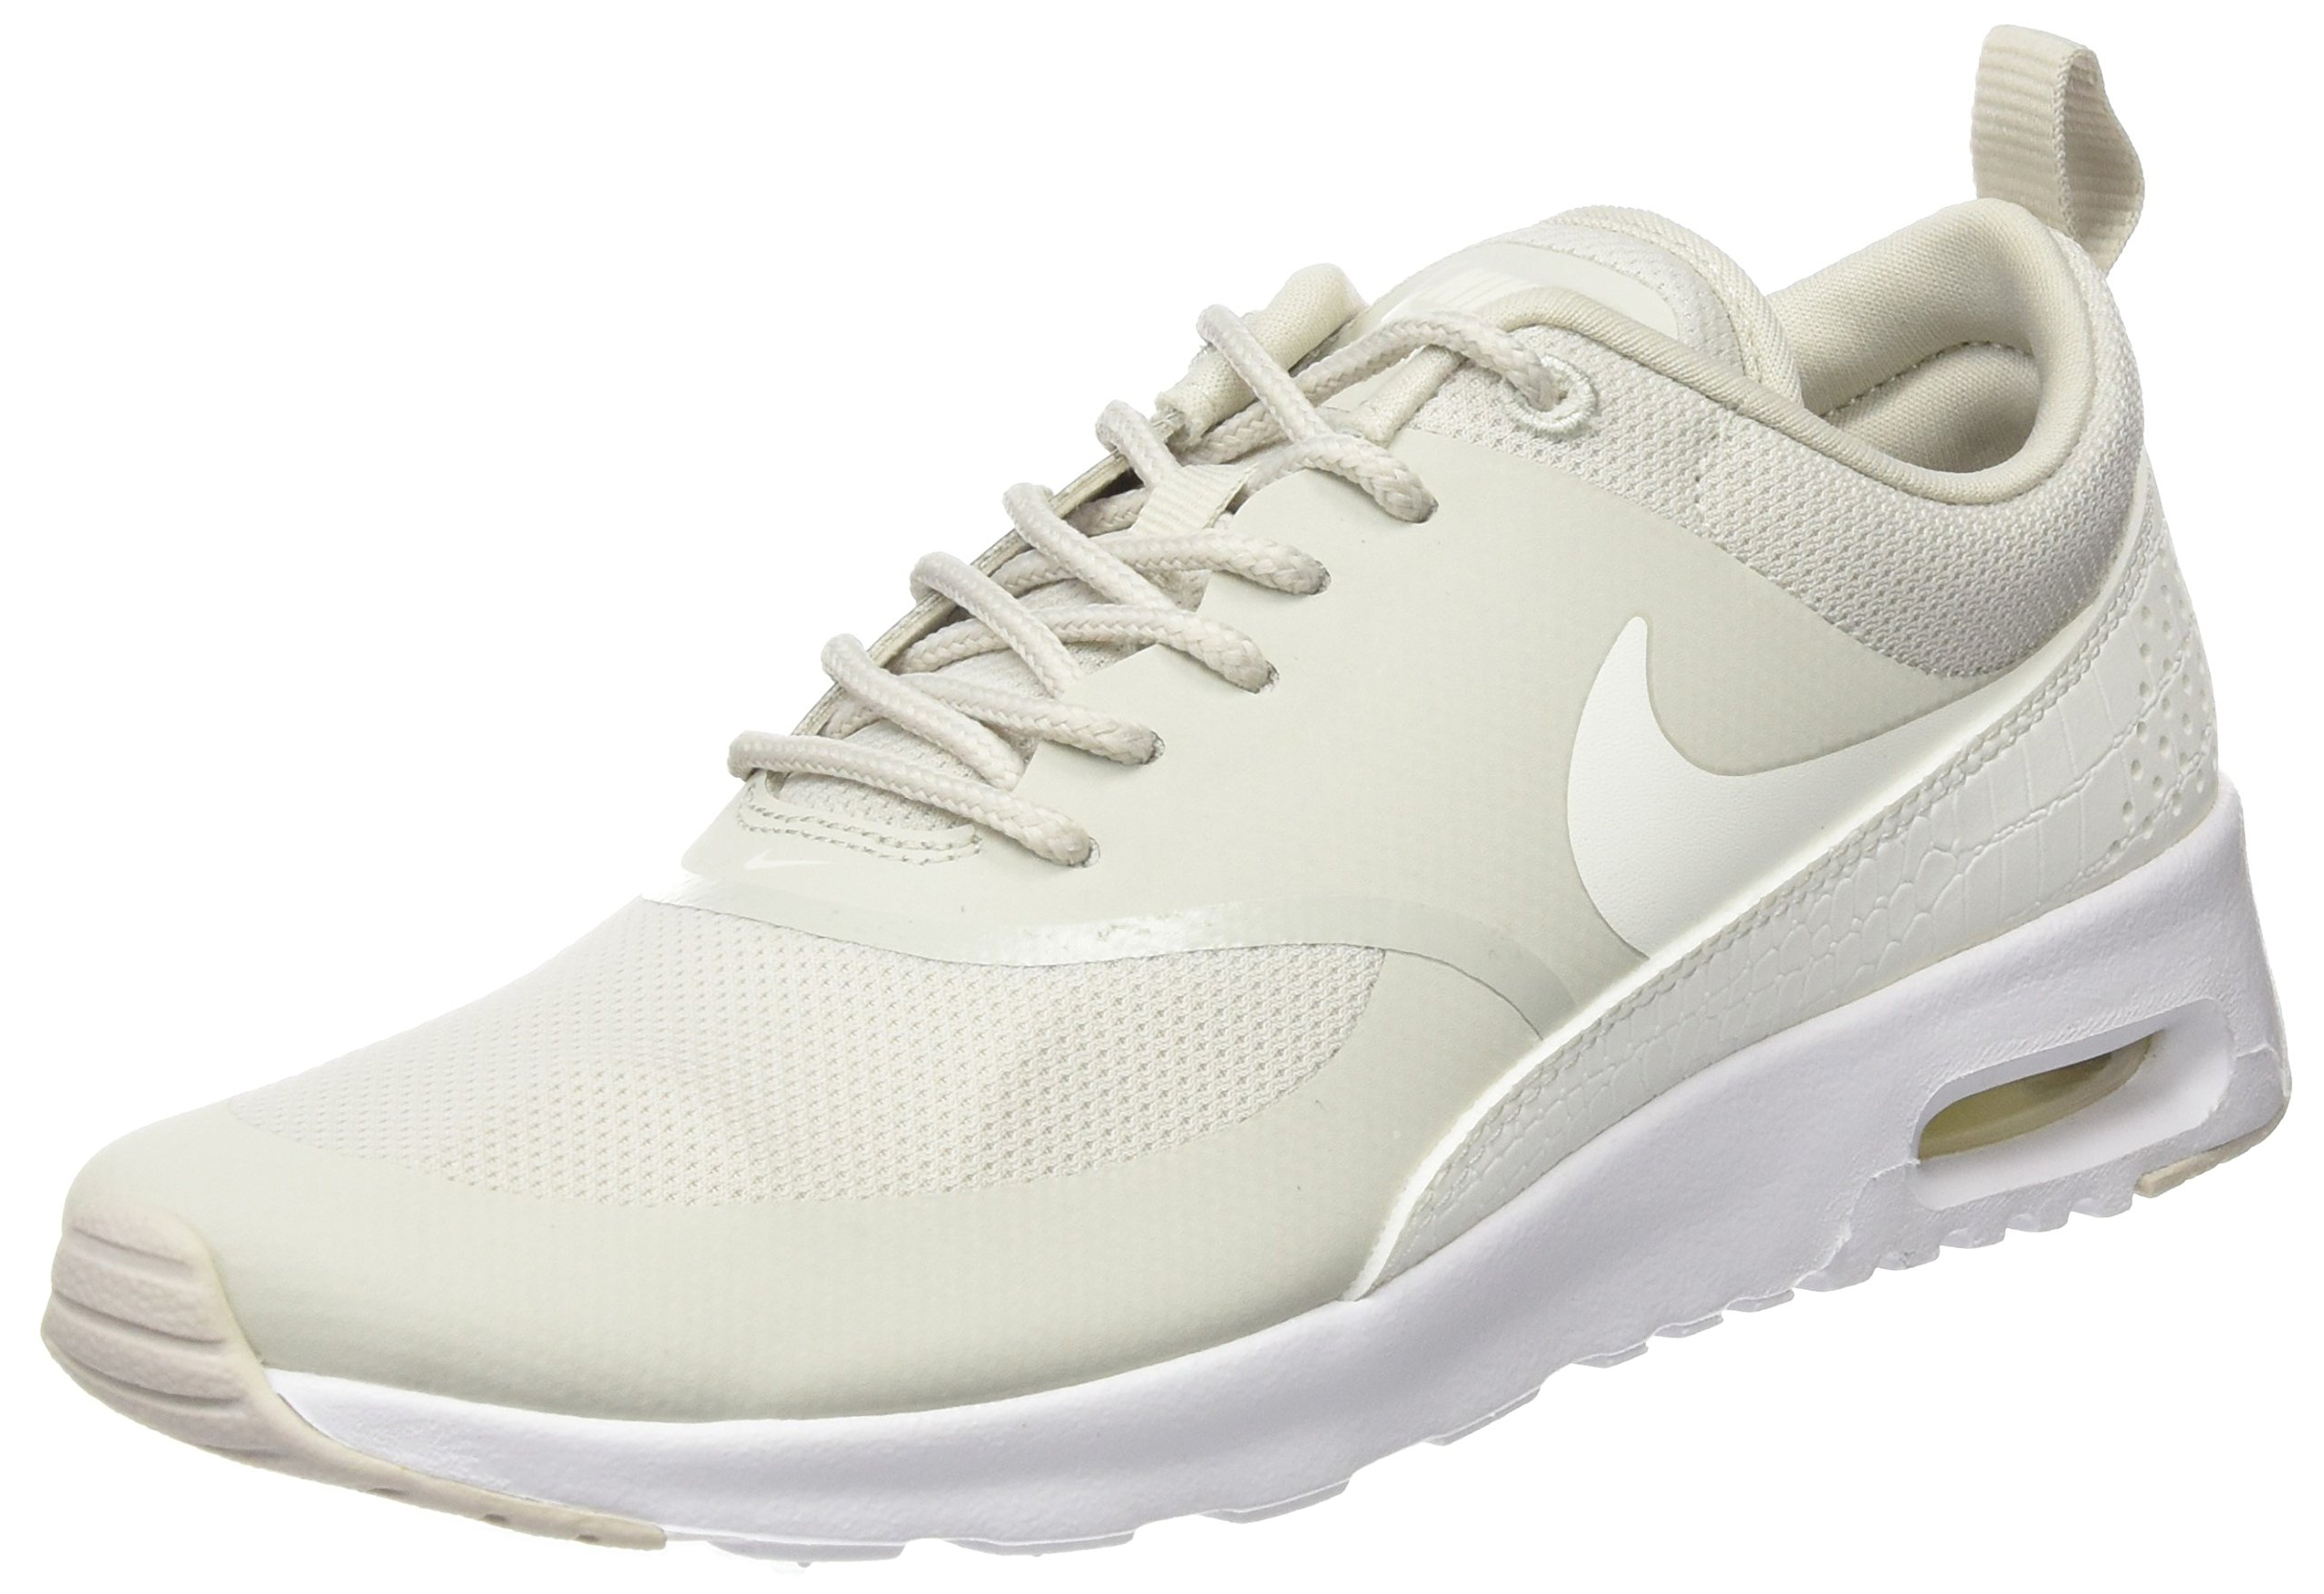 new product 7e65f f809d Galleon - Nike Women s Air Max Thea Low-Top Sneakers, Beige (Light  Bone Sail White), 4 UK